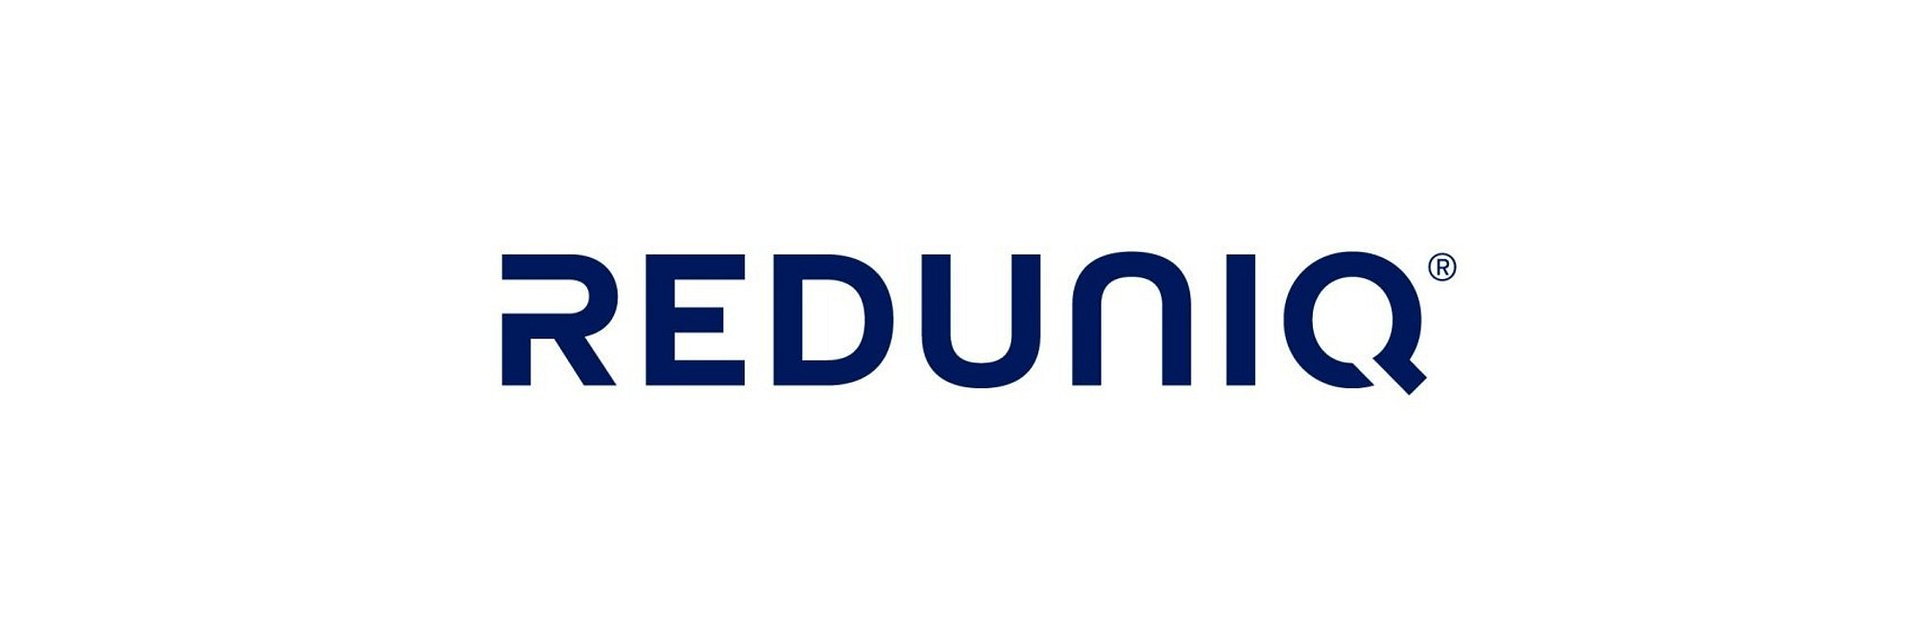 REDUNIQ regista aumento exponencial do contactless e e-commerce